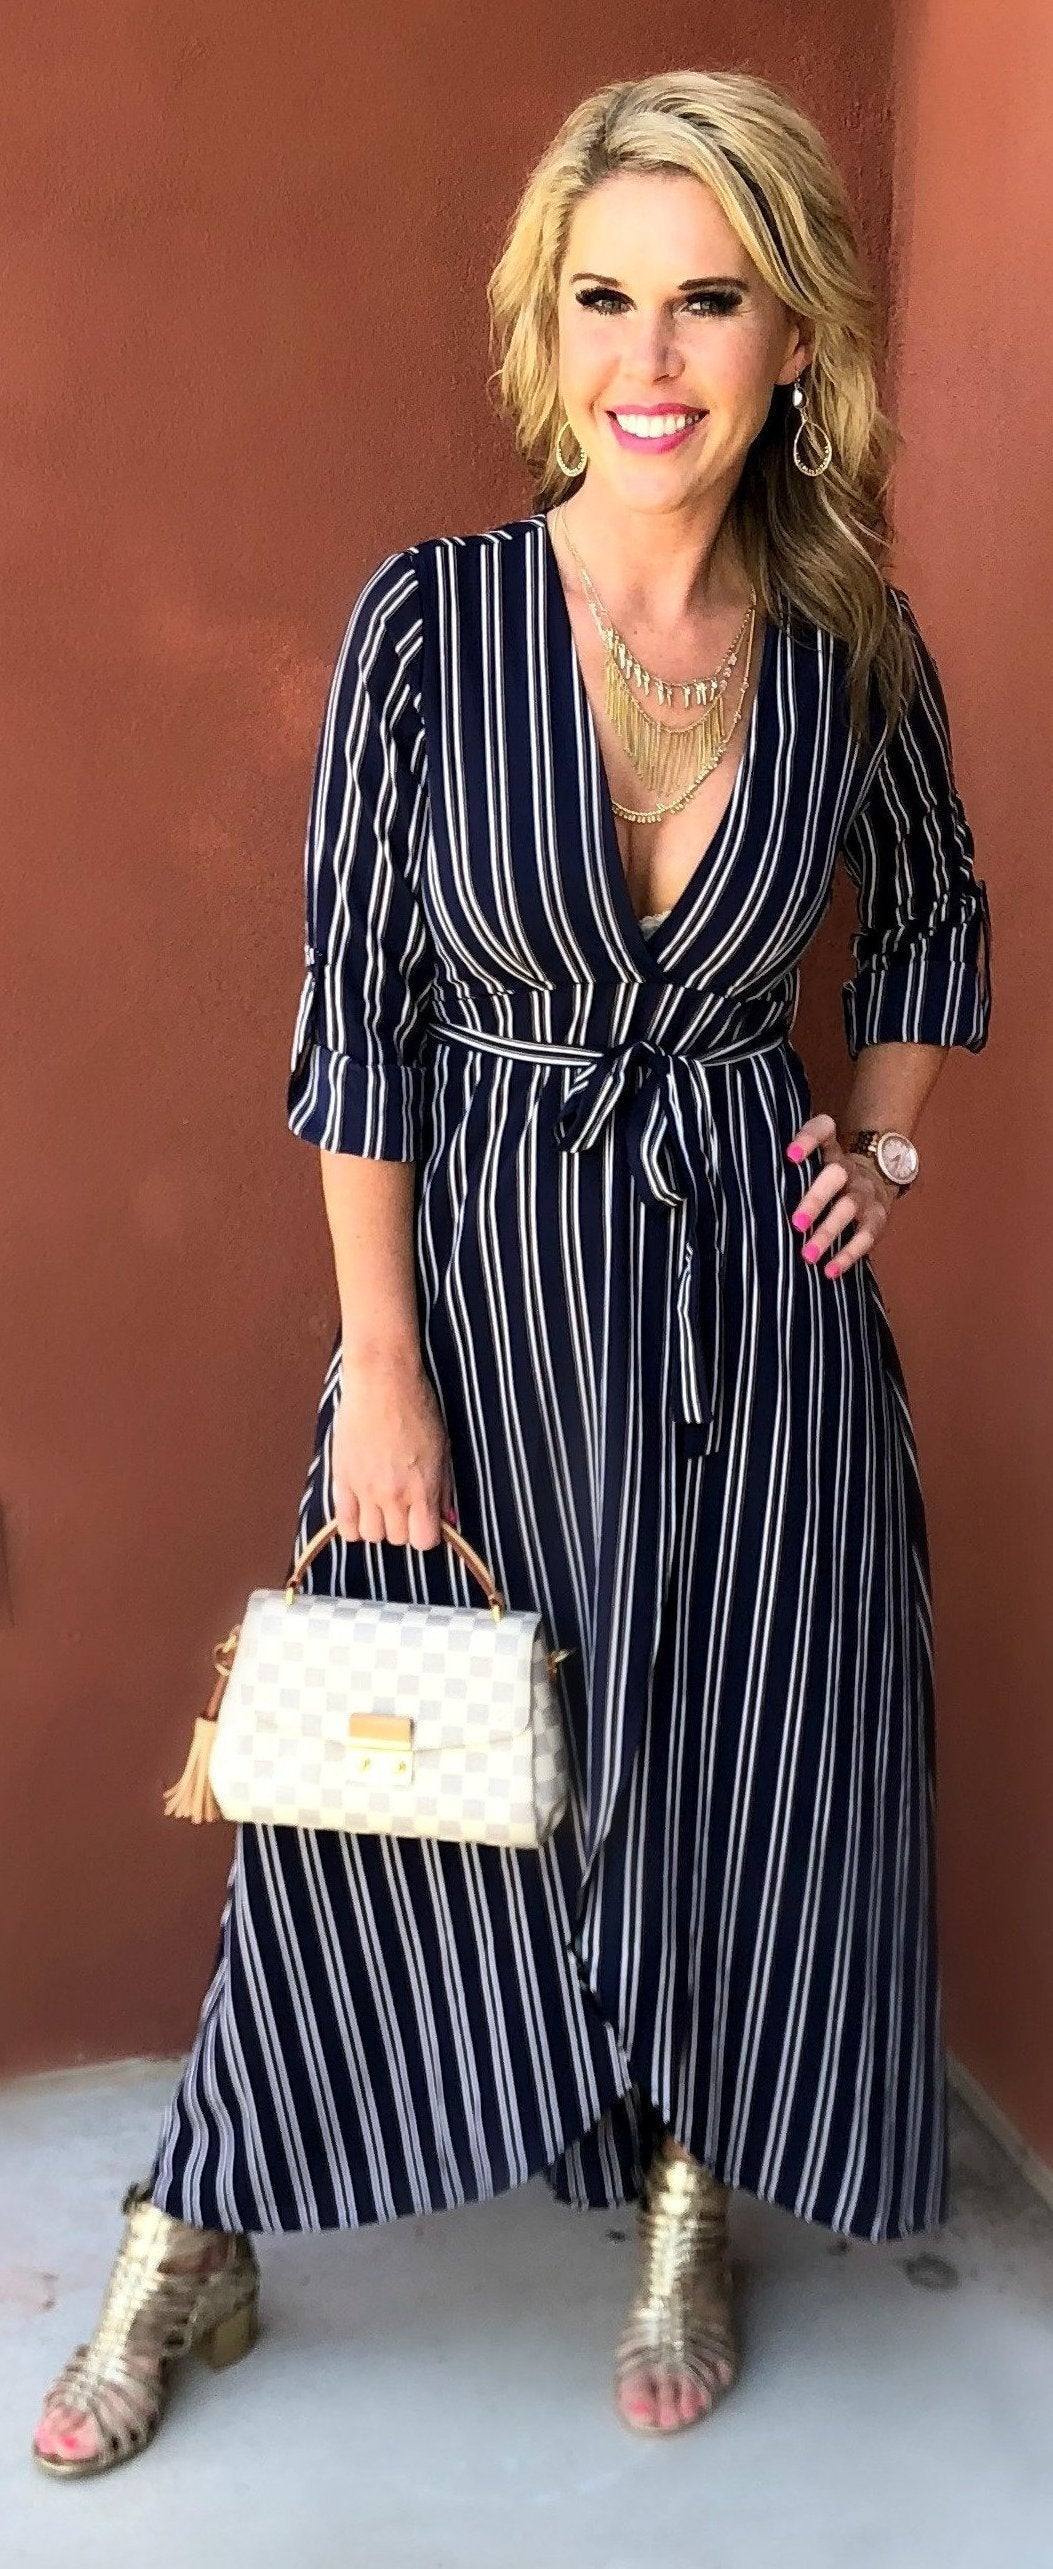 All the Stripes Navy Dress